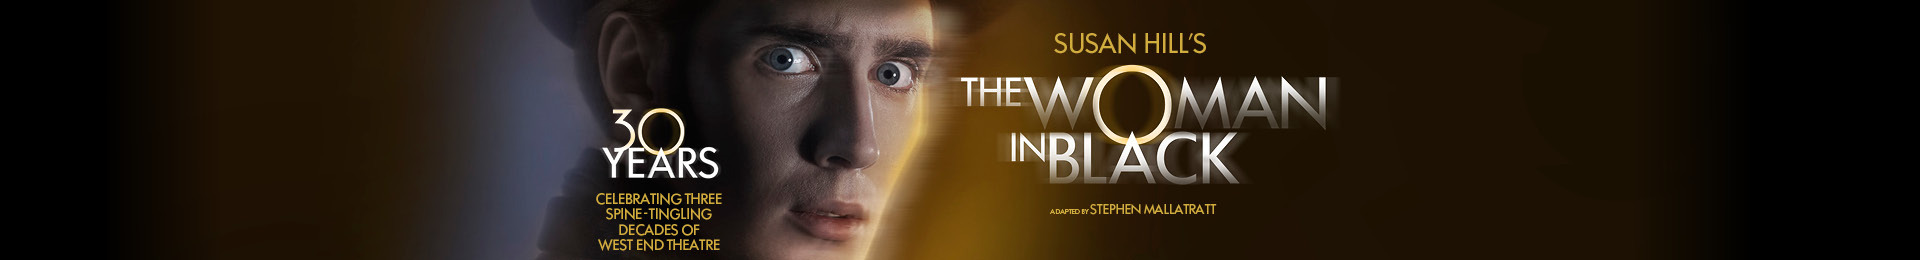 The Woman in Black and Dinner at Fire & Stone banner image